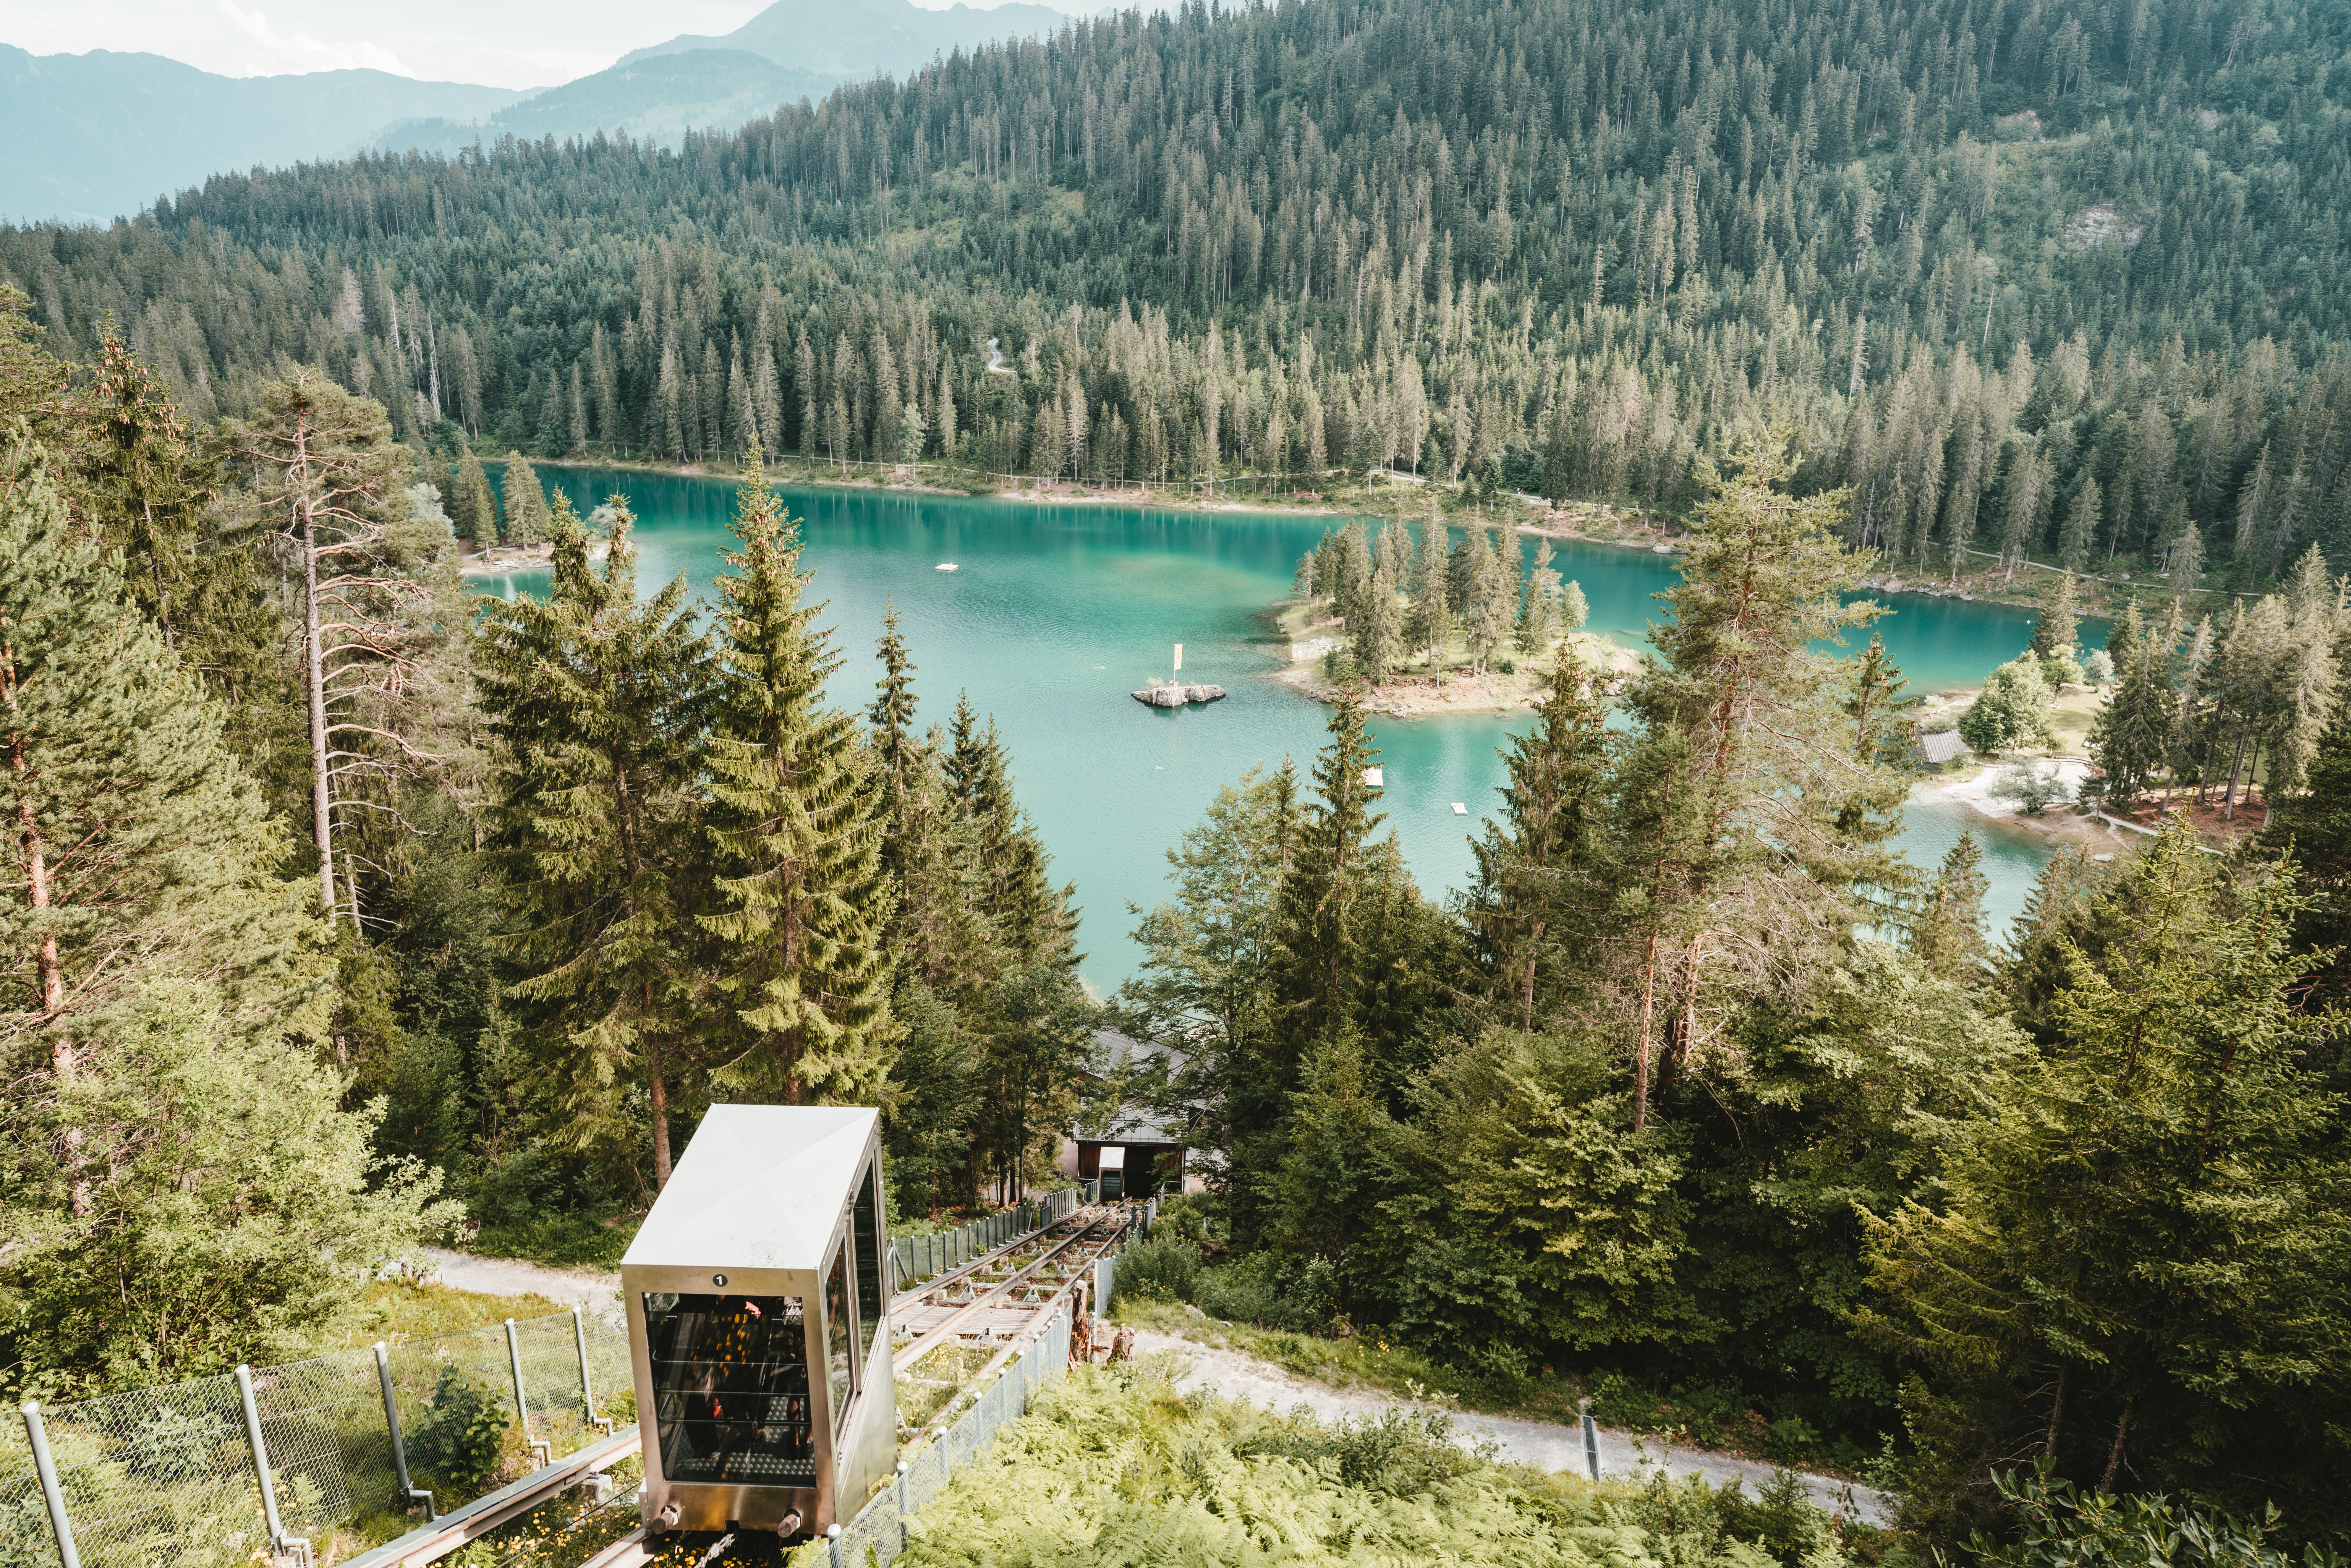 73460 download wallpaper Nature, Lake, Forest, Funicular, Mountains, Landscape screensavers and pictures for free